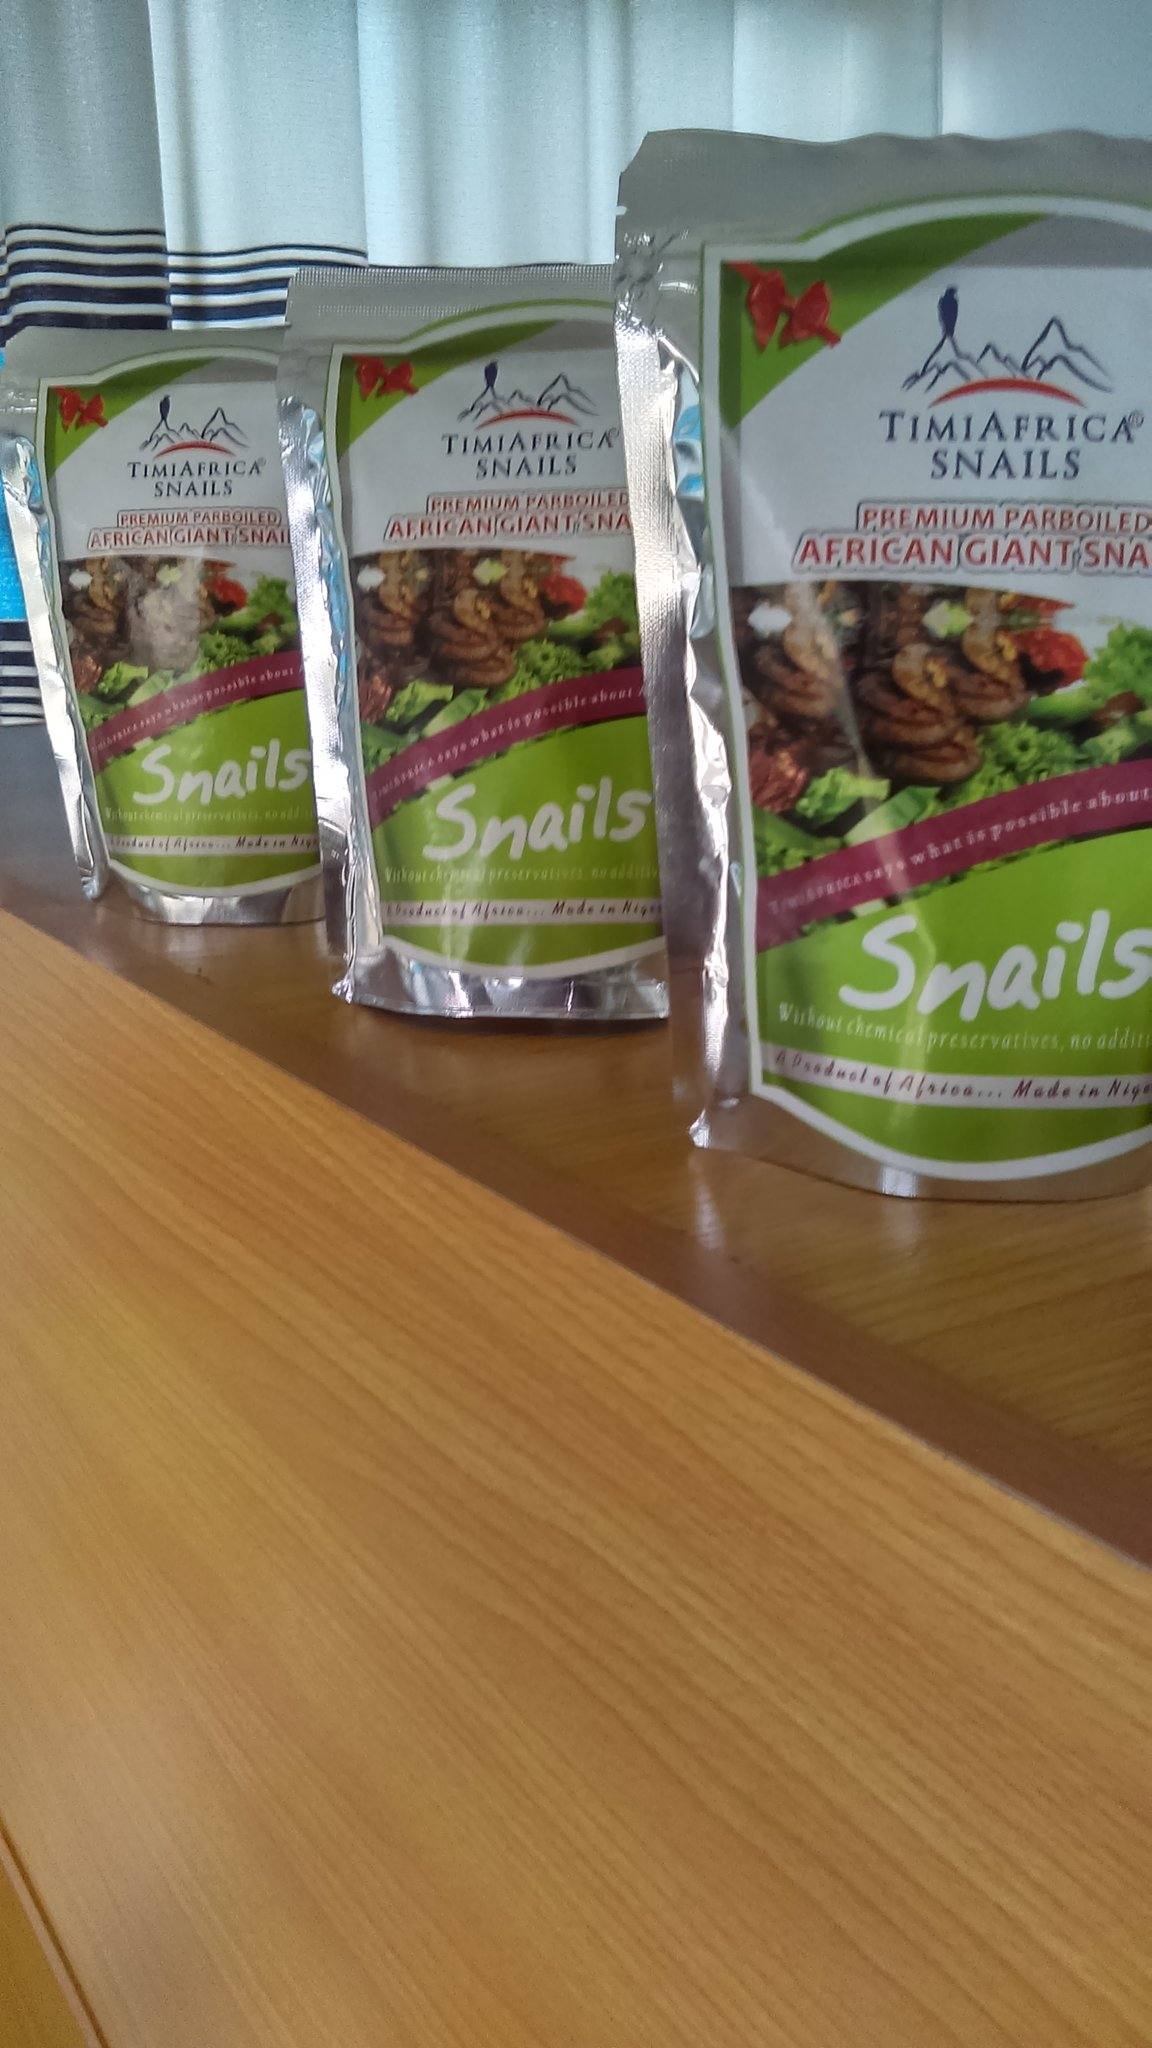 We do export ready snails. My customers could be on your TL please help retweet. #TIMIAFRICA Snails https://t.co/5VmMQFZXpp